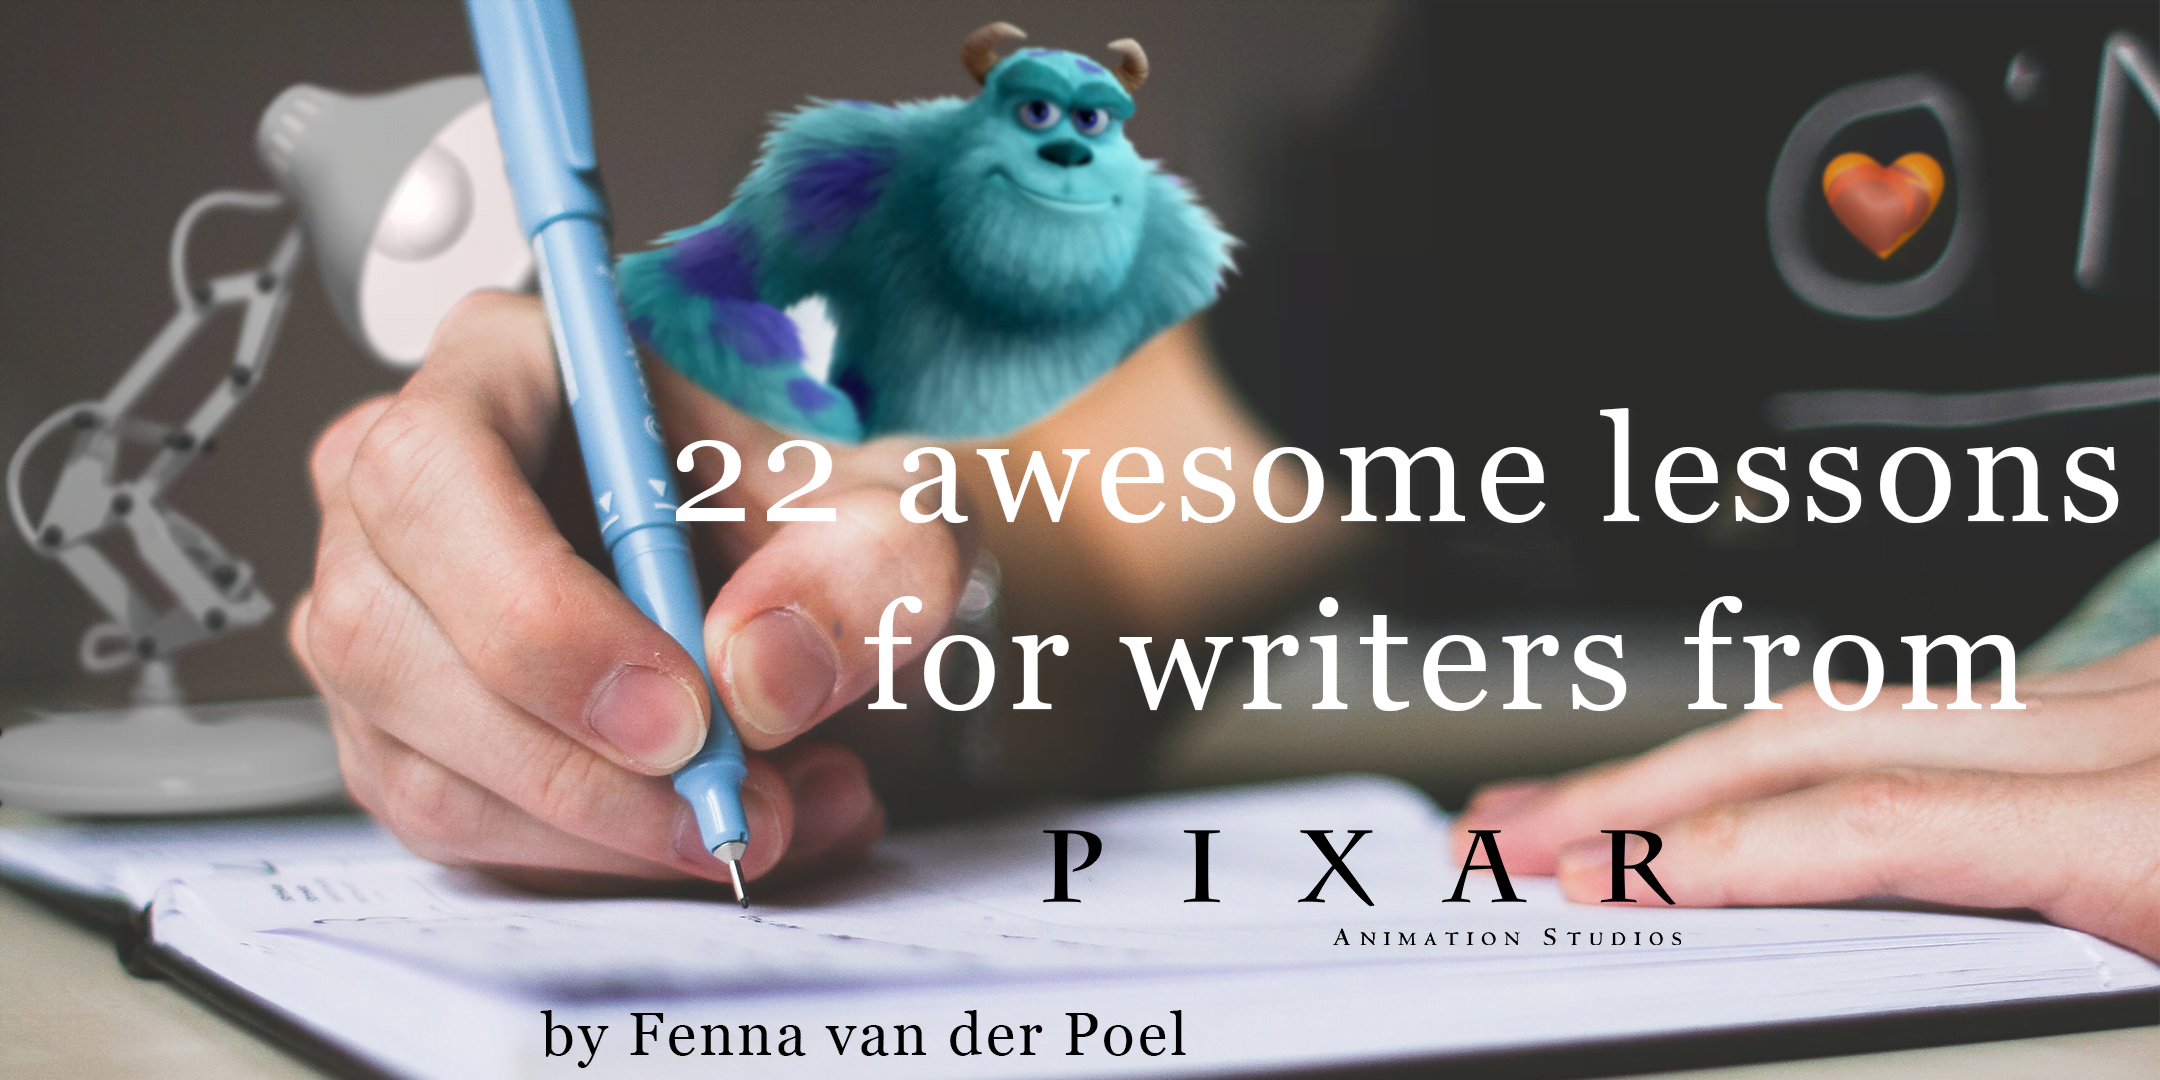 22-awesome-lessons-for-writers-from-Pixar-copywriters-content-creation-Ludejo